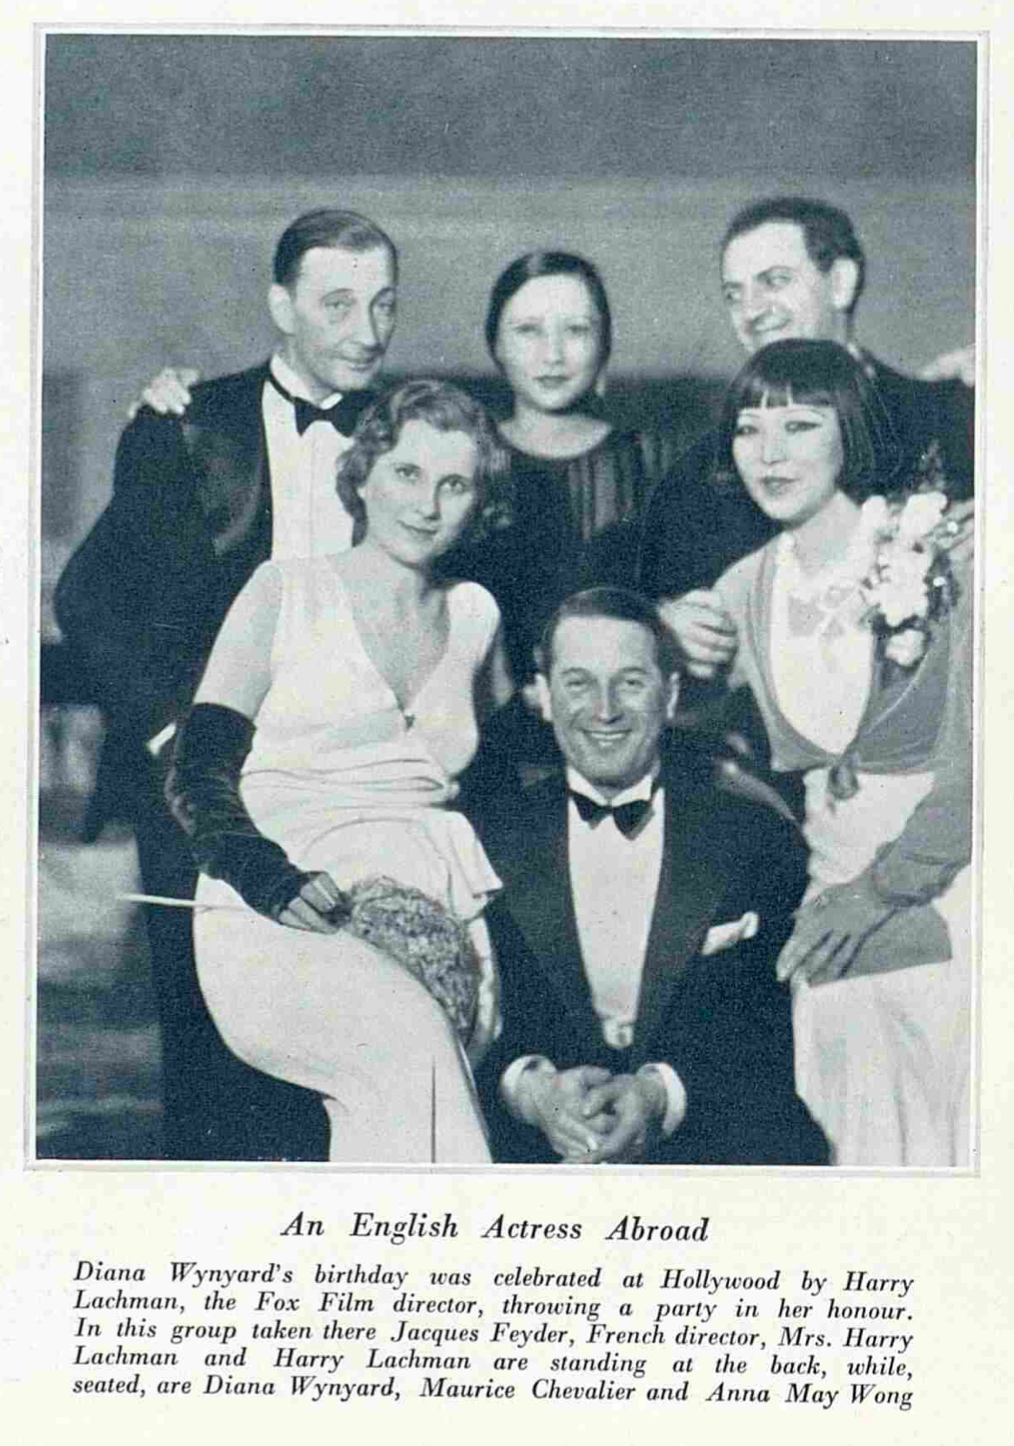 clipping from The Bystander, black and white photo of the Lachmans, Diana Wynyard, and other guests at a party